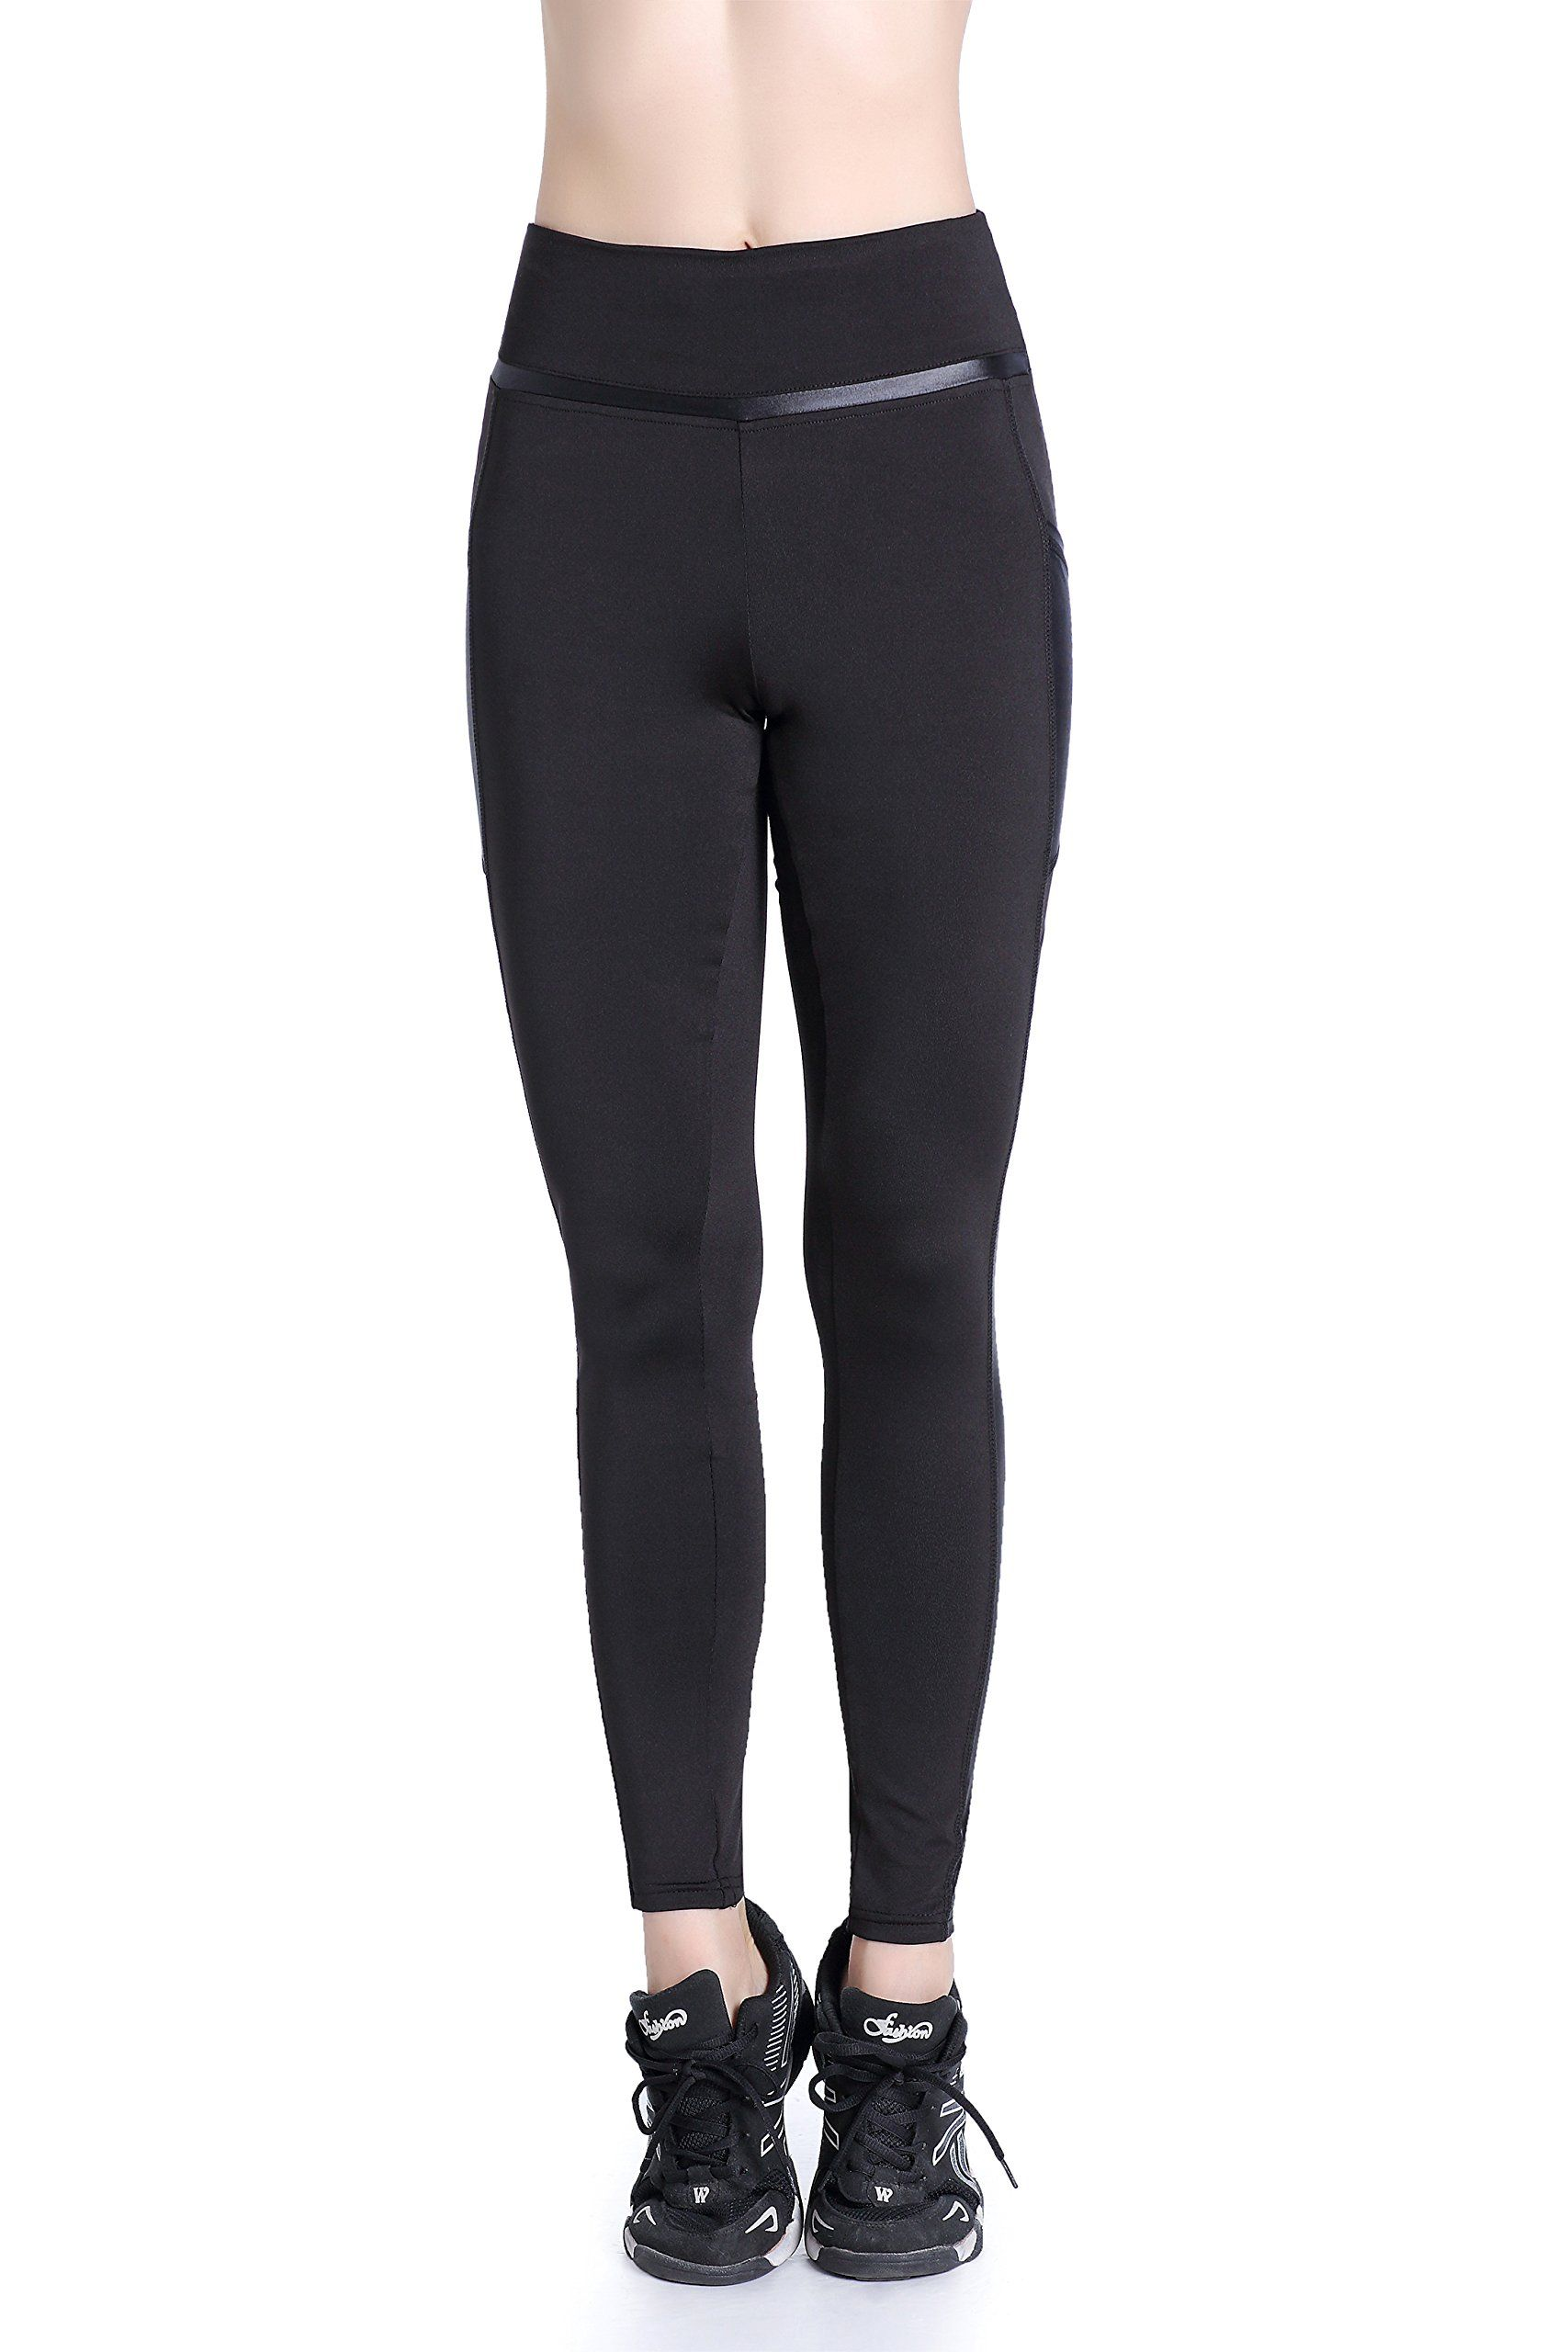 713ffc464b3ff EAST HONG Womens Yoga Leggings Exercise Workout Pants Gym Tights XL Black.  ** Learn more by visiting the image link-affiliate link. #treadmills